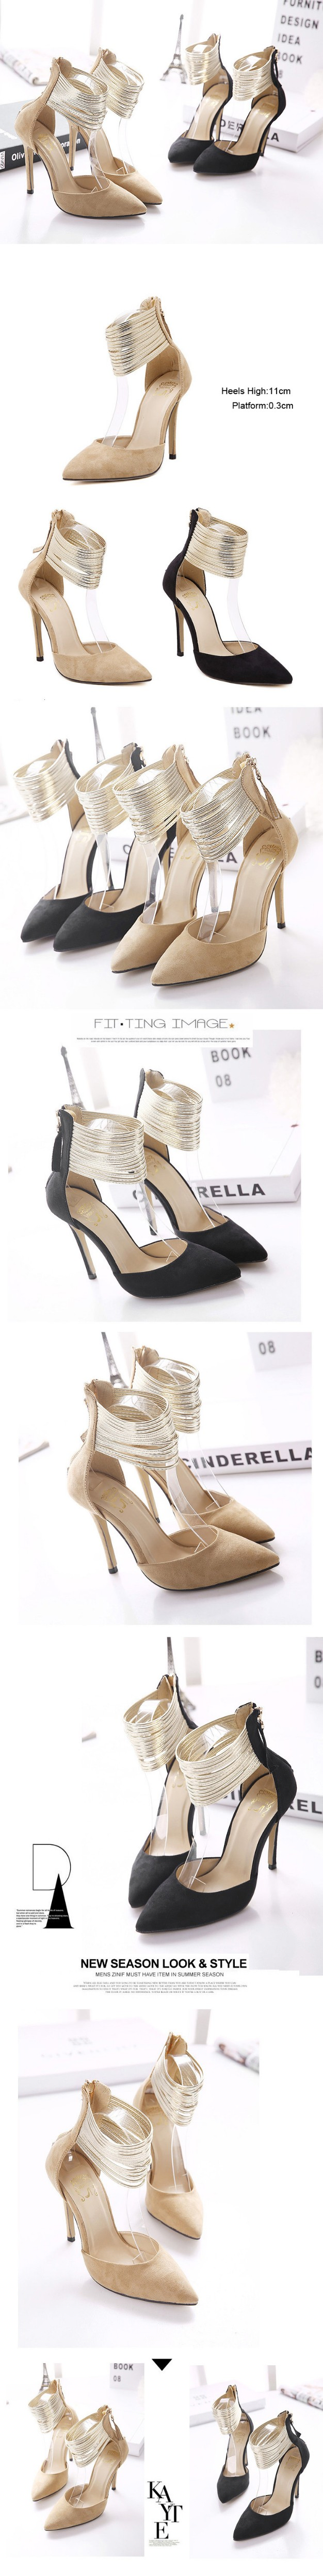 Fashion Angle Strap Style Thin High Heels Women Pumps Sexy Pointed Toe Back Zipper Party Shoes New Arrival Women Shoes ZM2.5